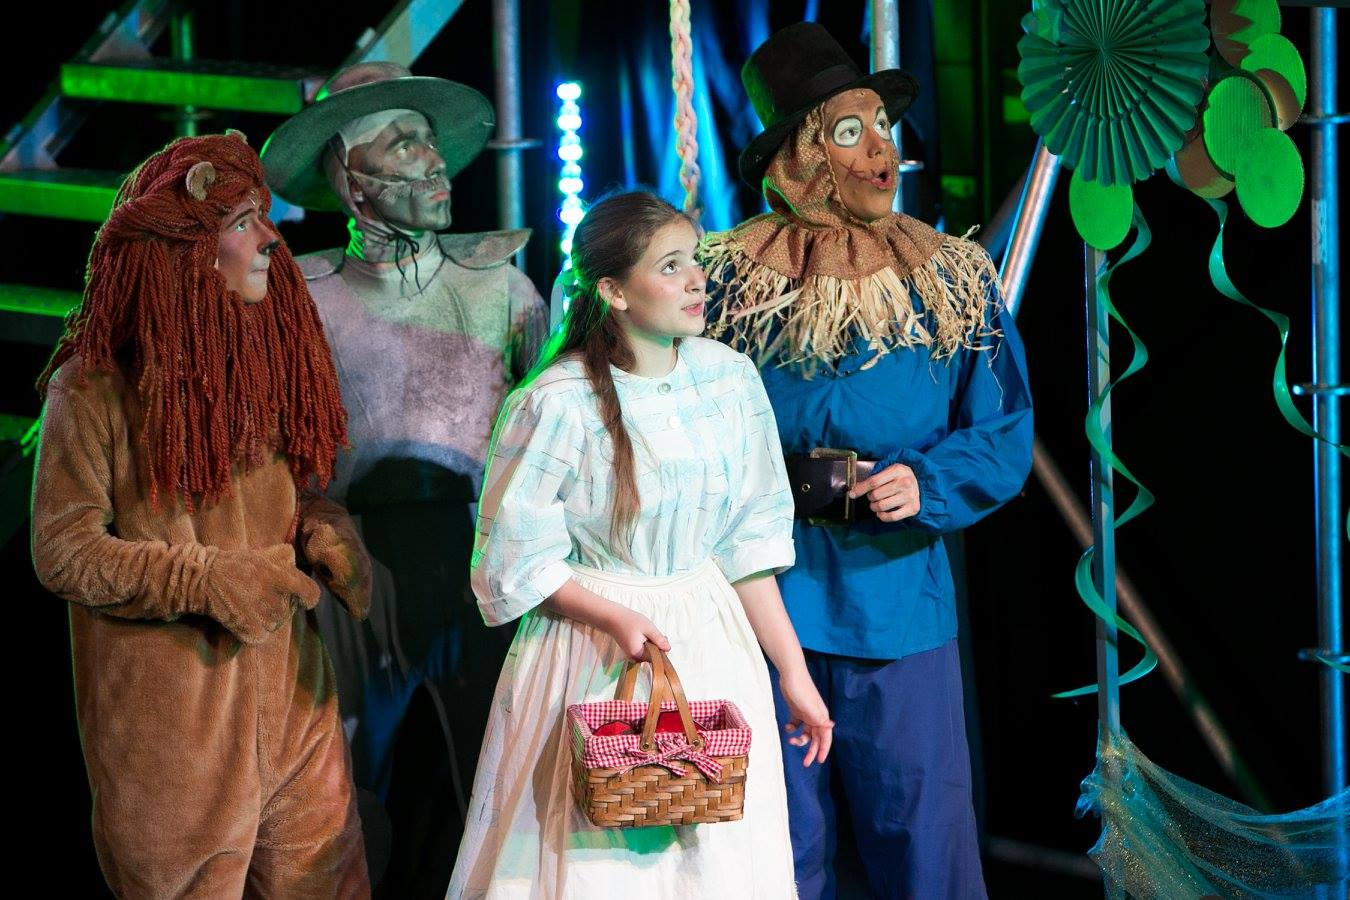 Lion, Tin Man, Dorothy, and Scarecrow in The Wizard of Oz costume design by Katharine Tarkulich